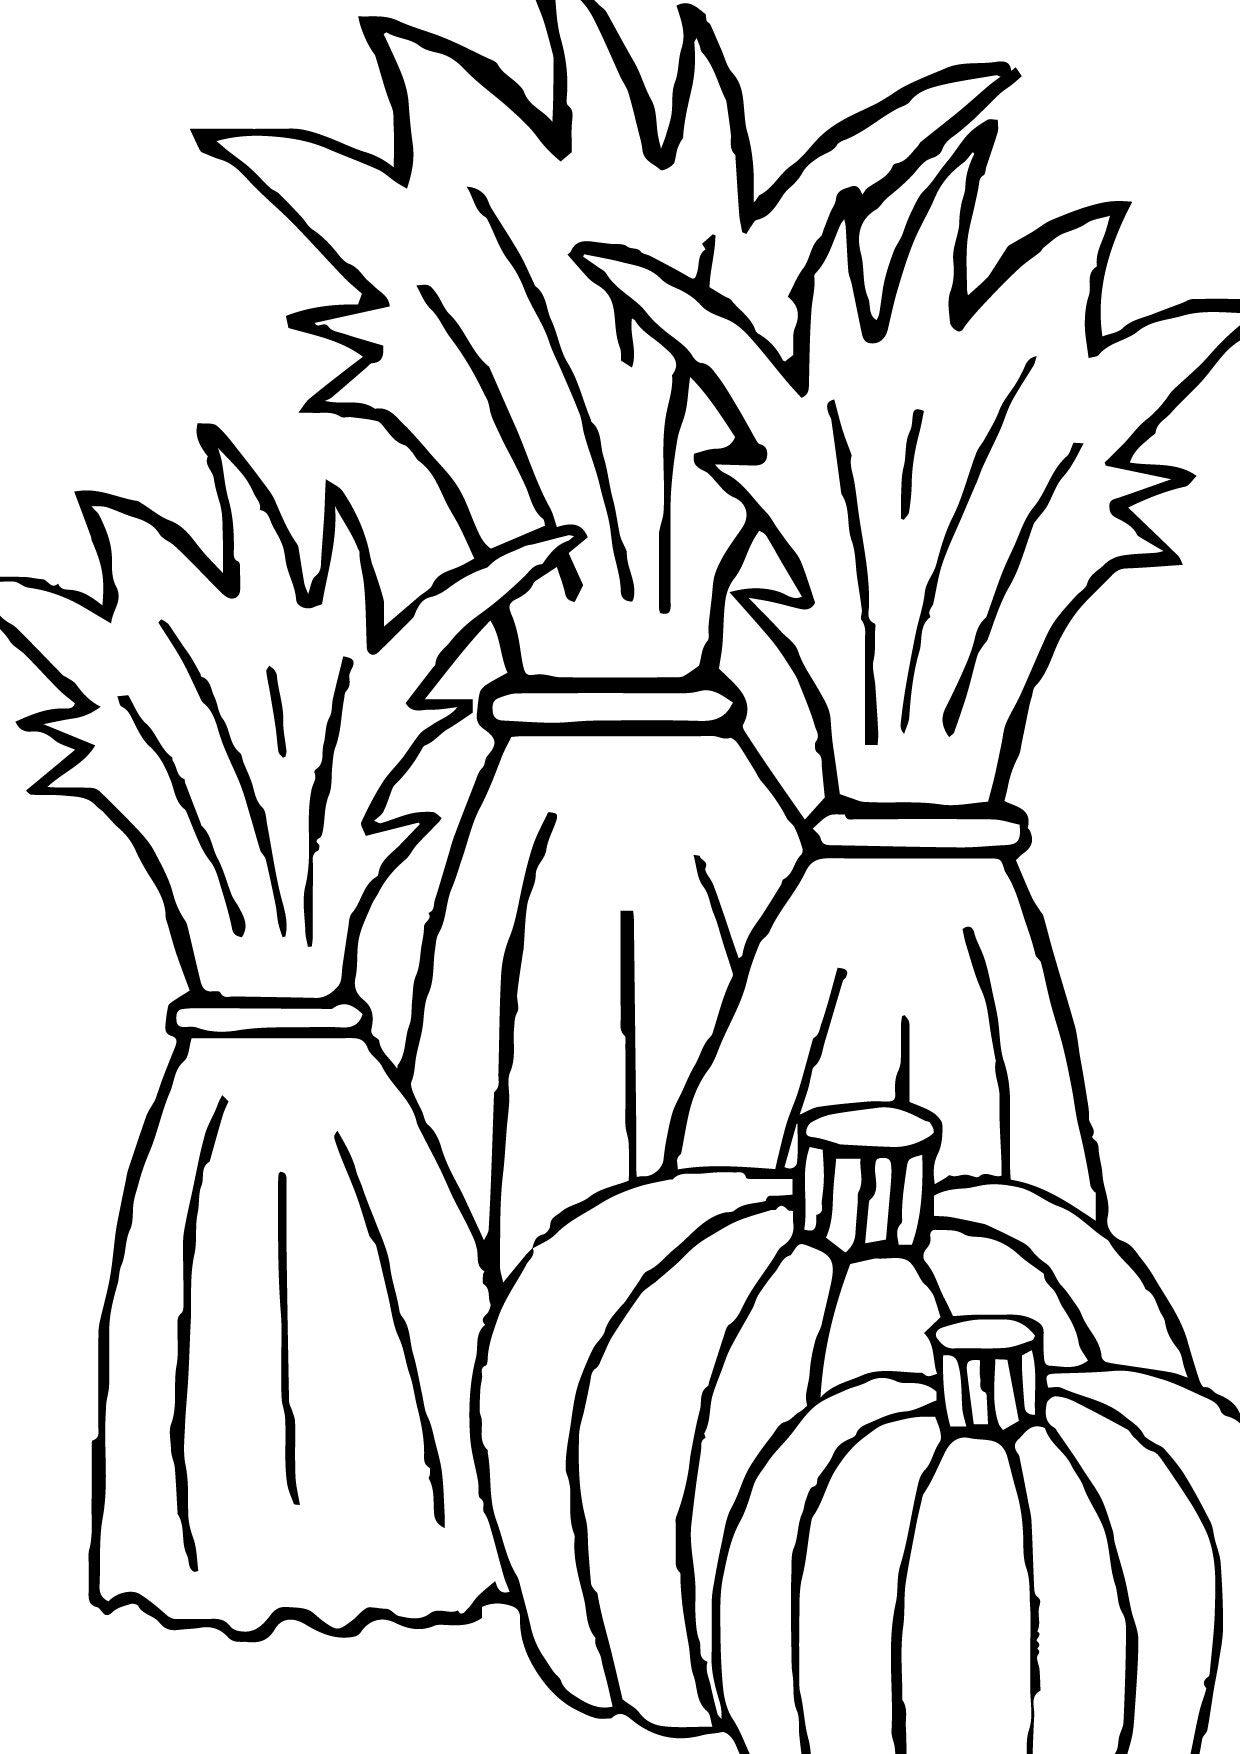 Awesome Corn Stalk Coloring Page 08 09 2015 081307 Pages